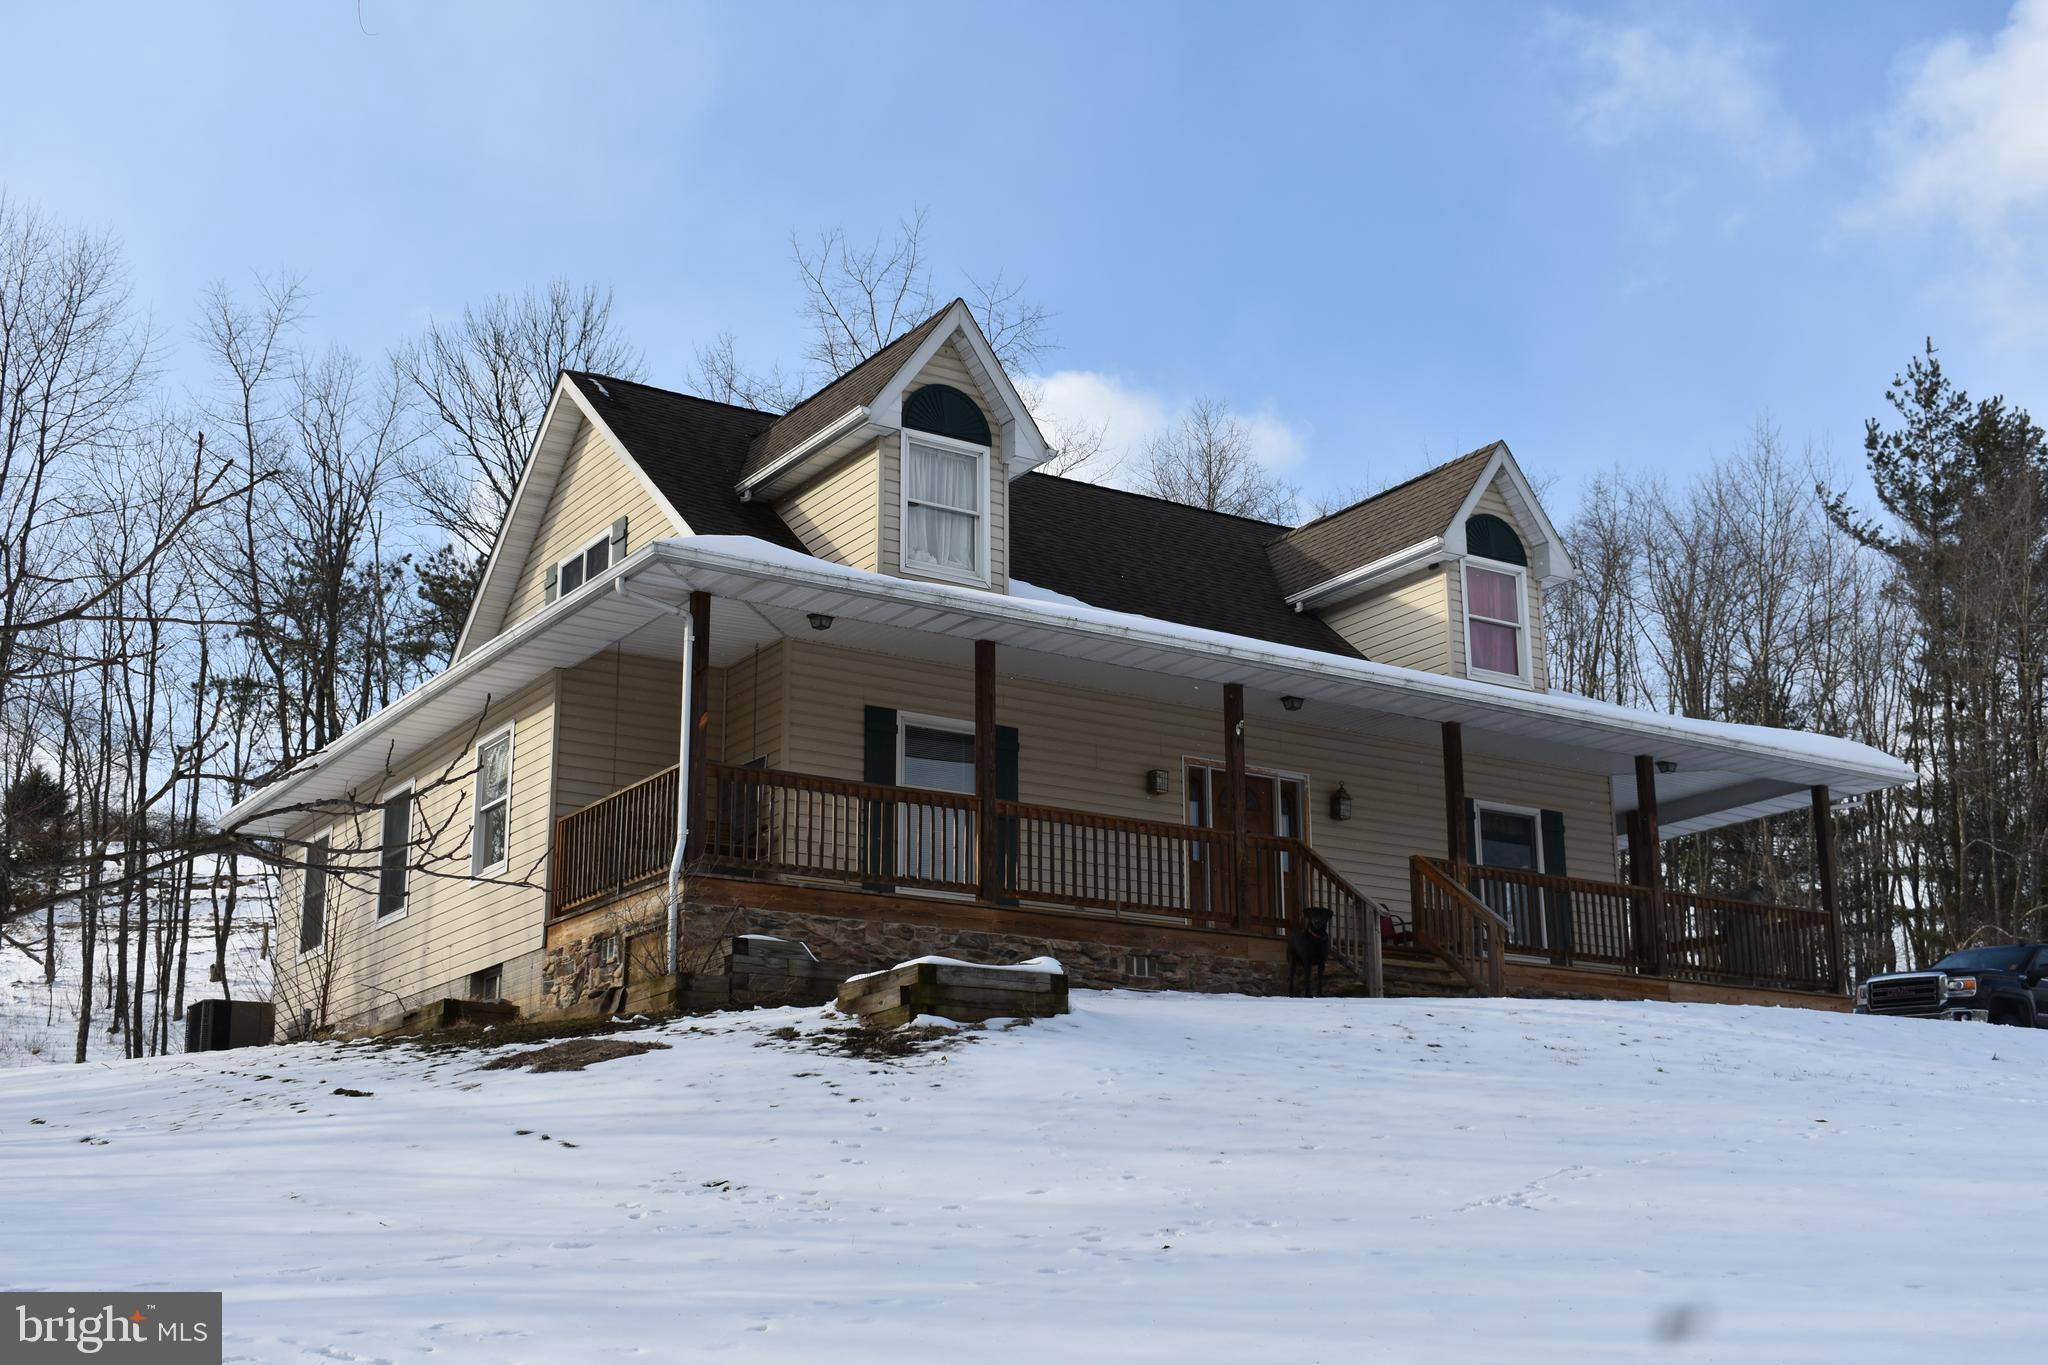 60 OLD MYERSTOWN ROAD, MAYSVILLE, WV 26833